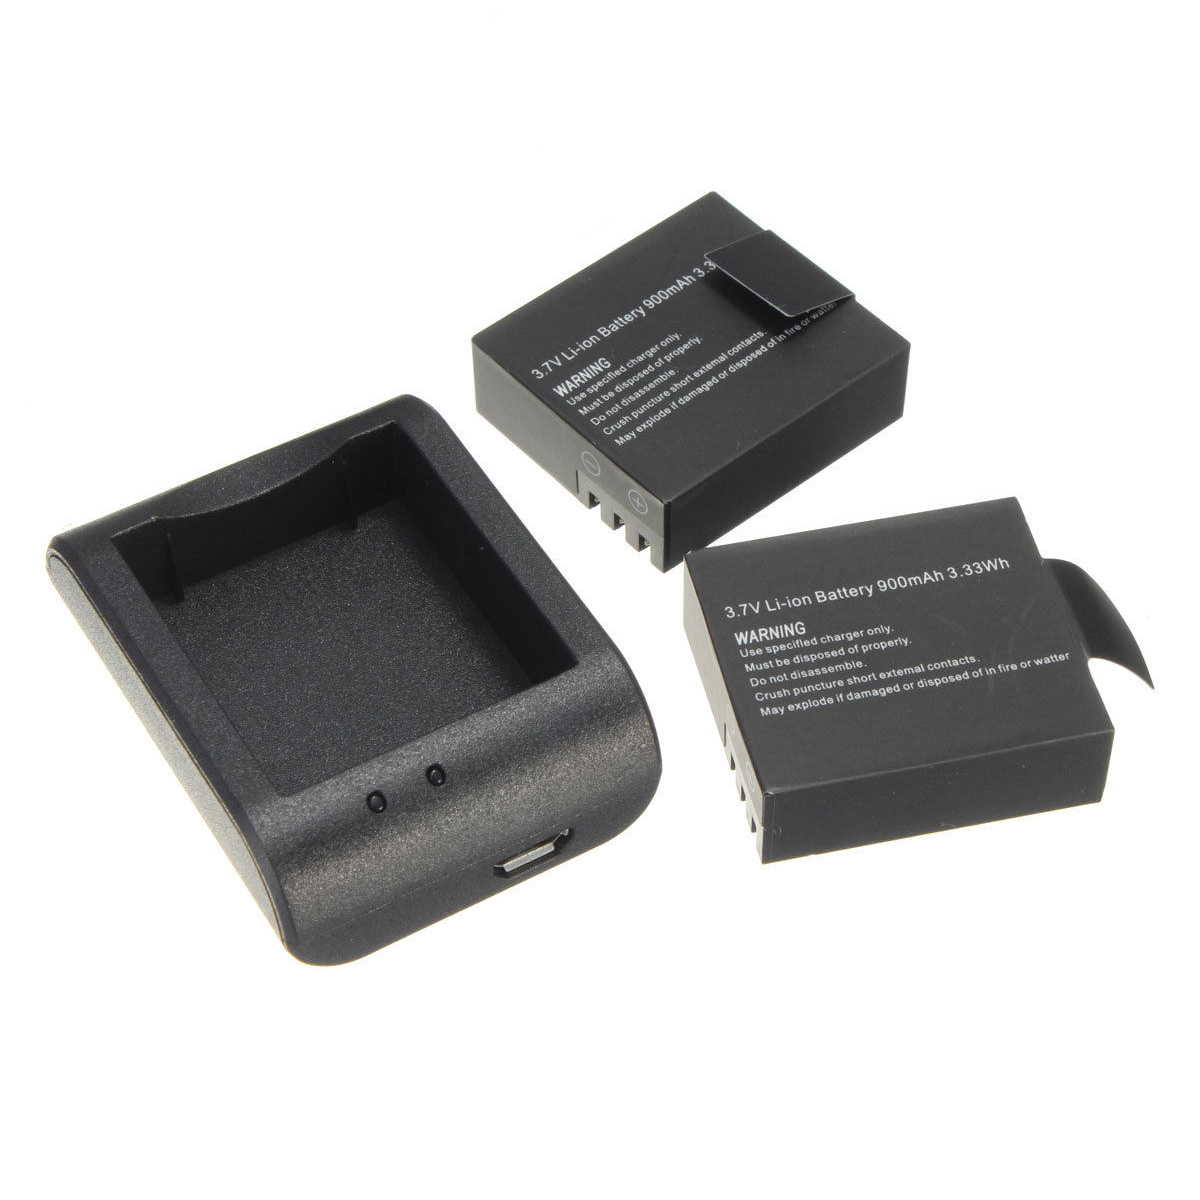 HFES 2 x 900 mAh battery Battery + Quick Charge Capability USB Charger for SJ4000 SJ5000 SJ6000 Action Camcorder Camera DVRHFES 2 x 900 mAh battery Battery + Quick Charge Capability USB Charger for SJ4000 SJ5000 SJ6000 Action Camcorder Camera DVR